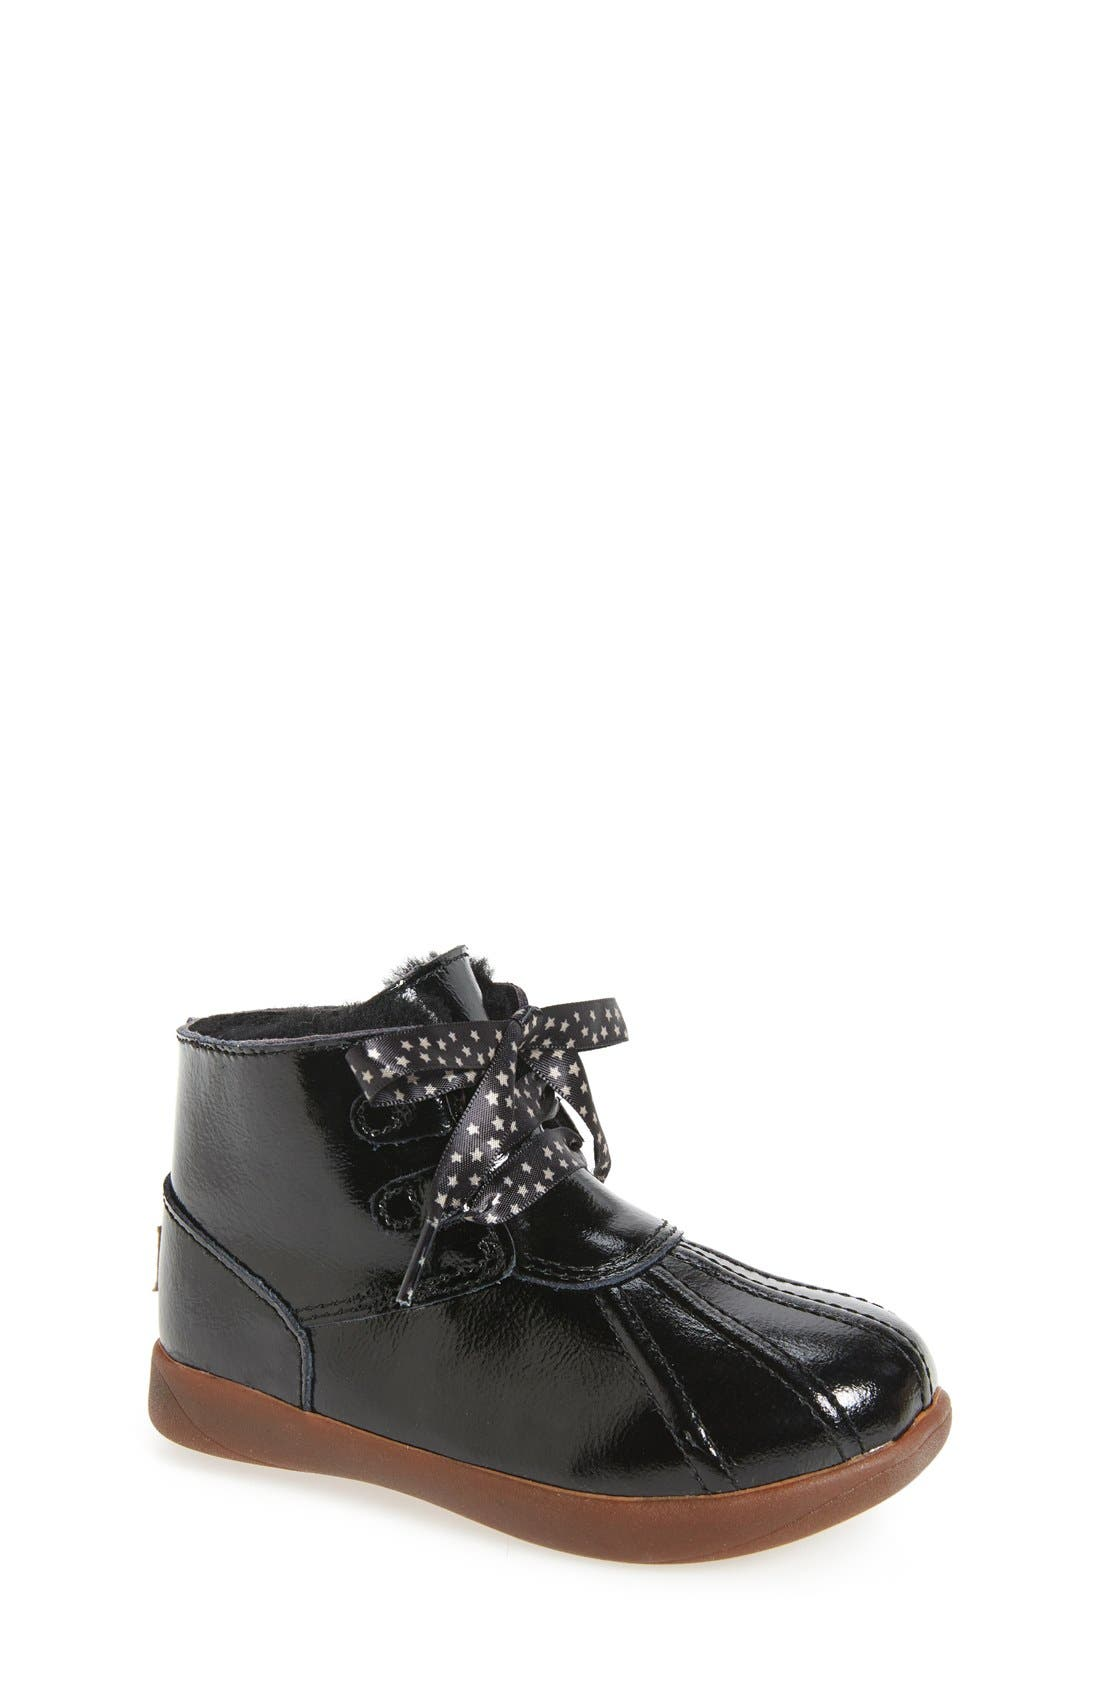 Payten Boot,                         Main,                         color, Black Patent Leather